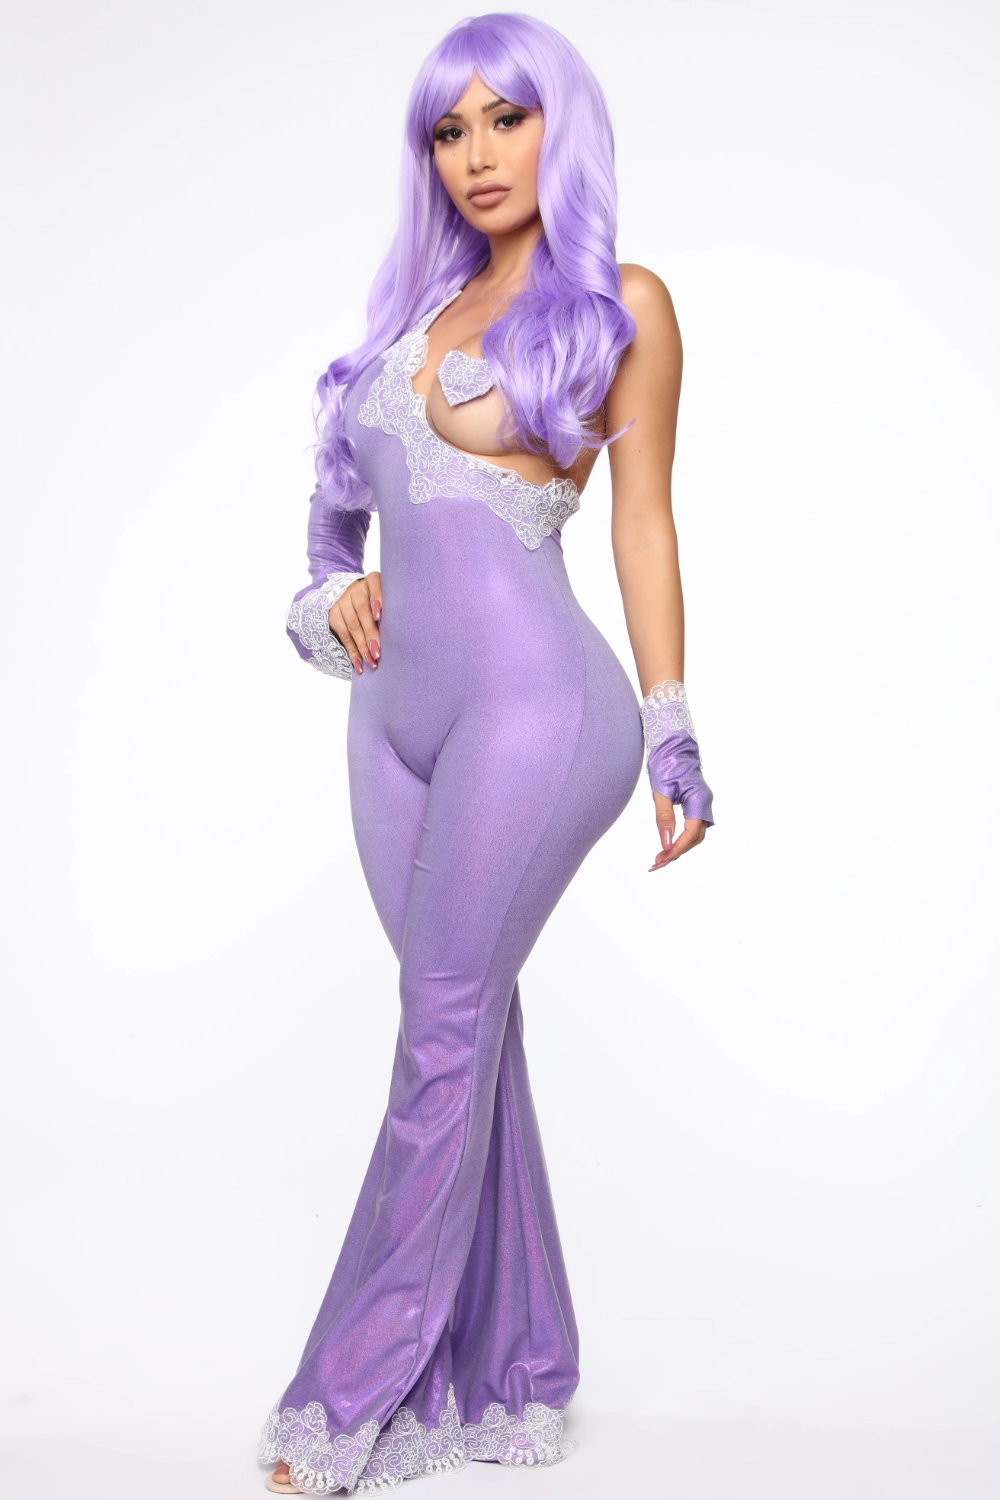 Crush On You 3 Piece Costume Set Lavender in 2020